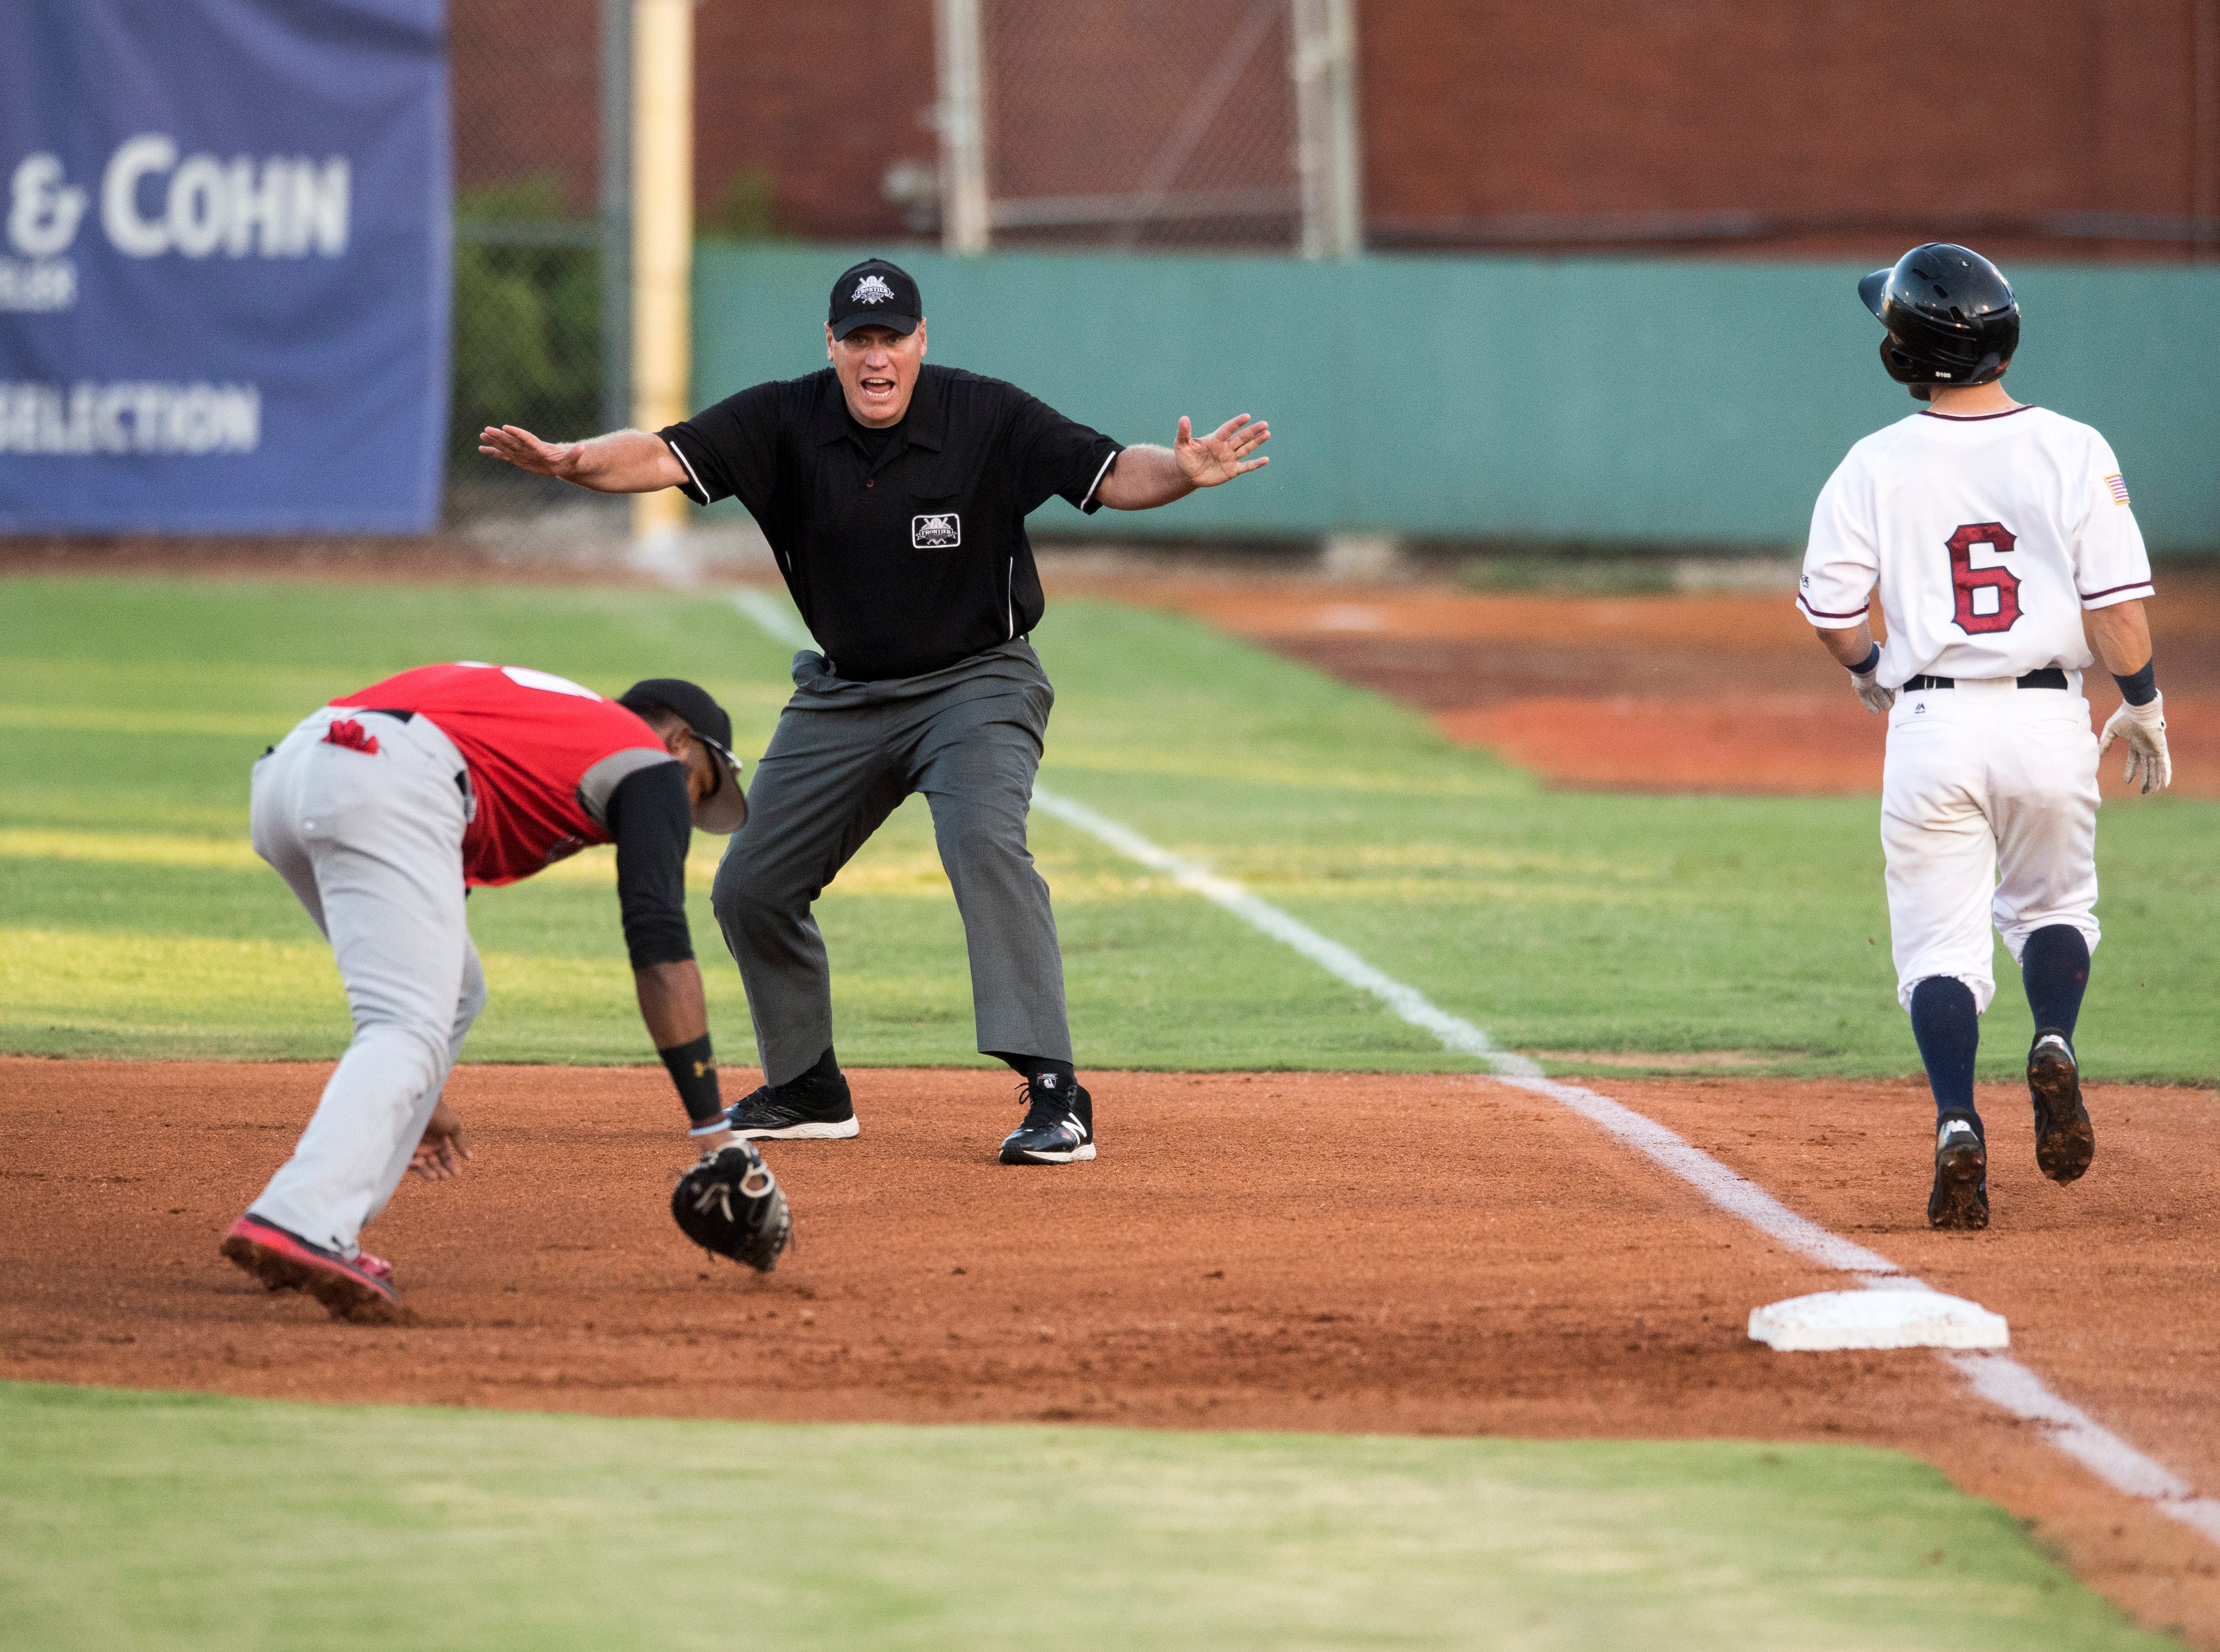 Evansville's David Cronin (6) is safe at first base after Washington's Reydel Medina (21) struggles with the ball during game one of the Frontier League Division Series at Bosse Field against the Evansville Otters Tuesday, September 4, 2018.